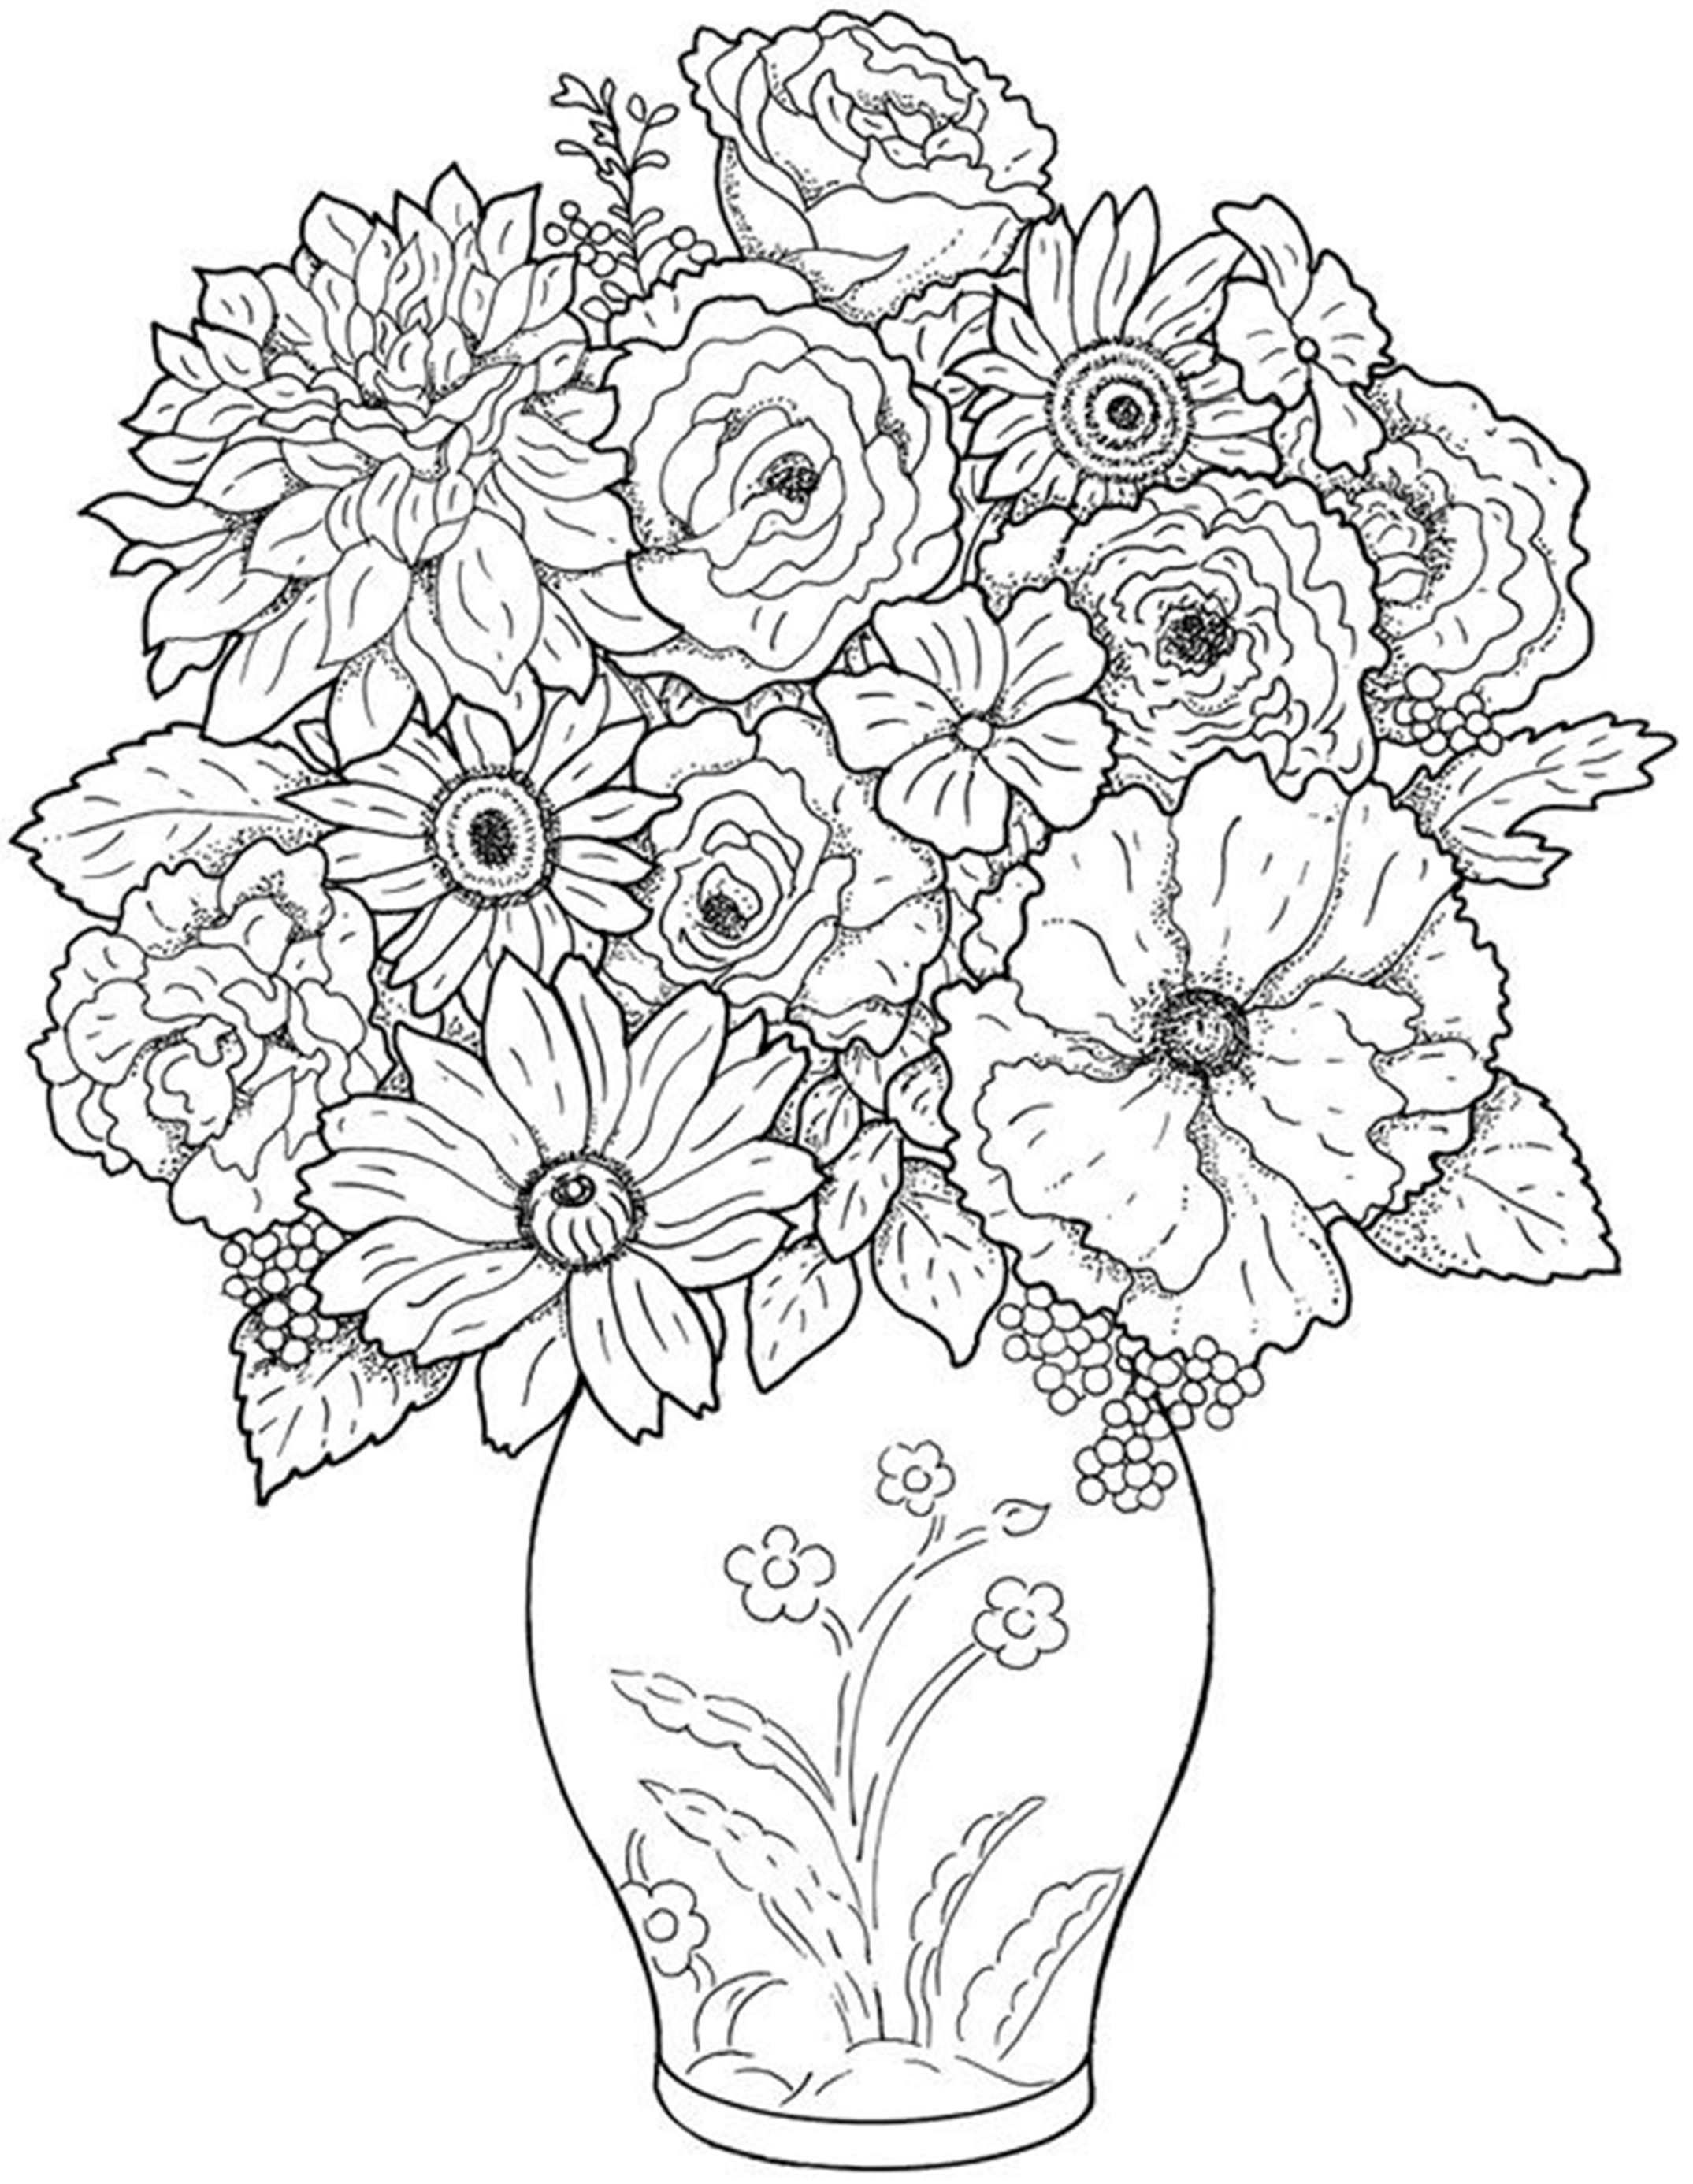 free vase flower coloring pages - Flowers Coloring Pages